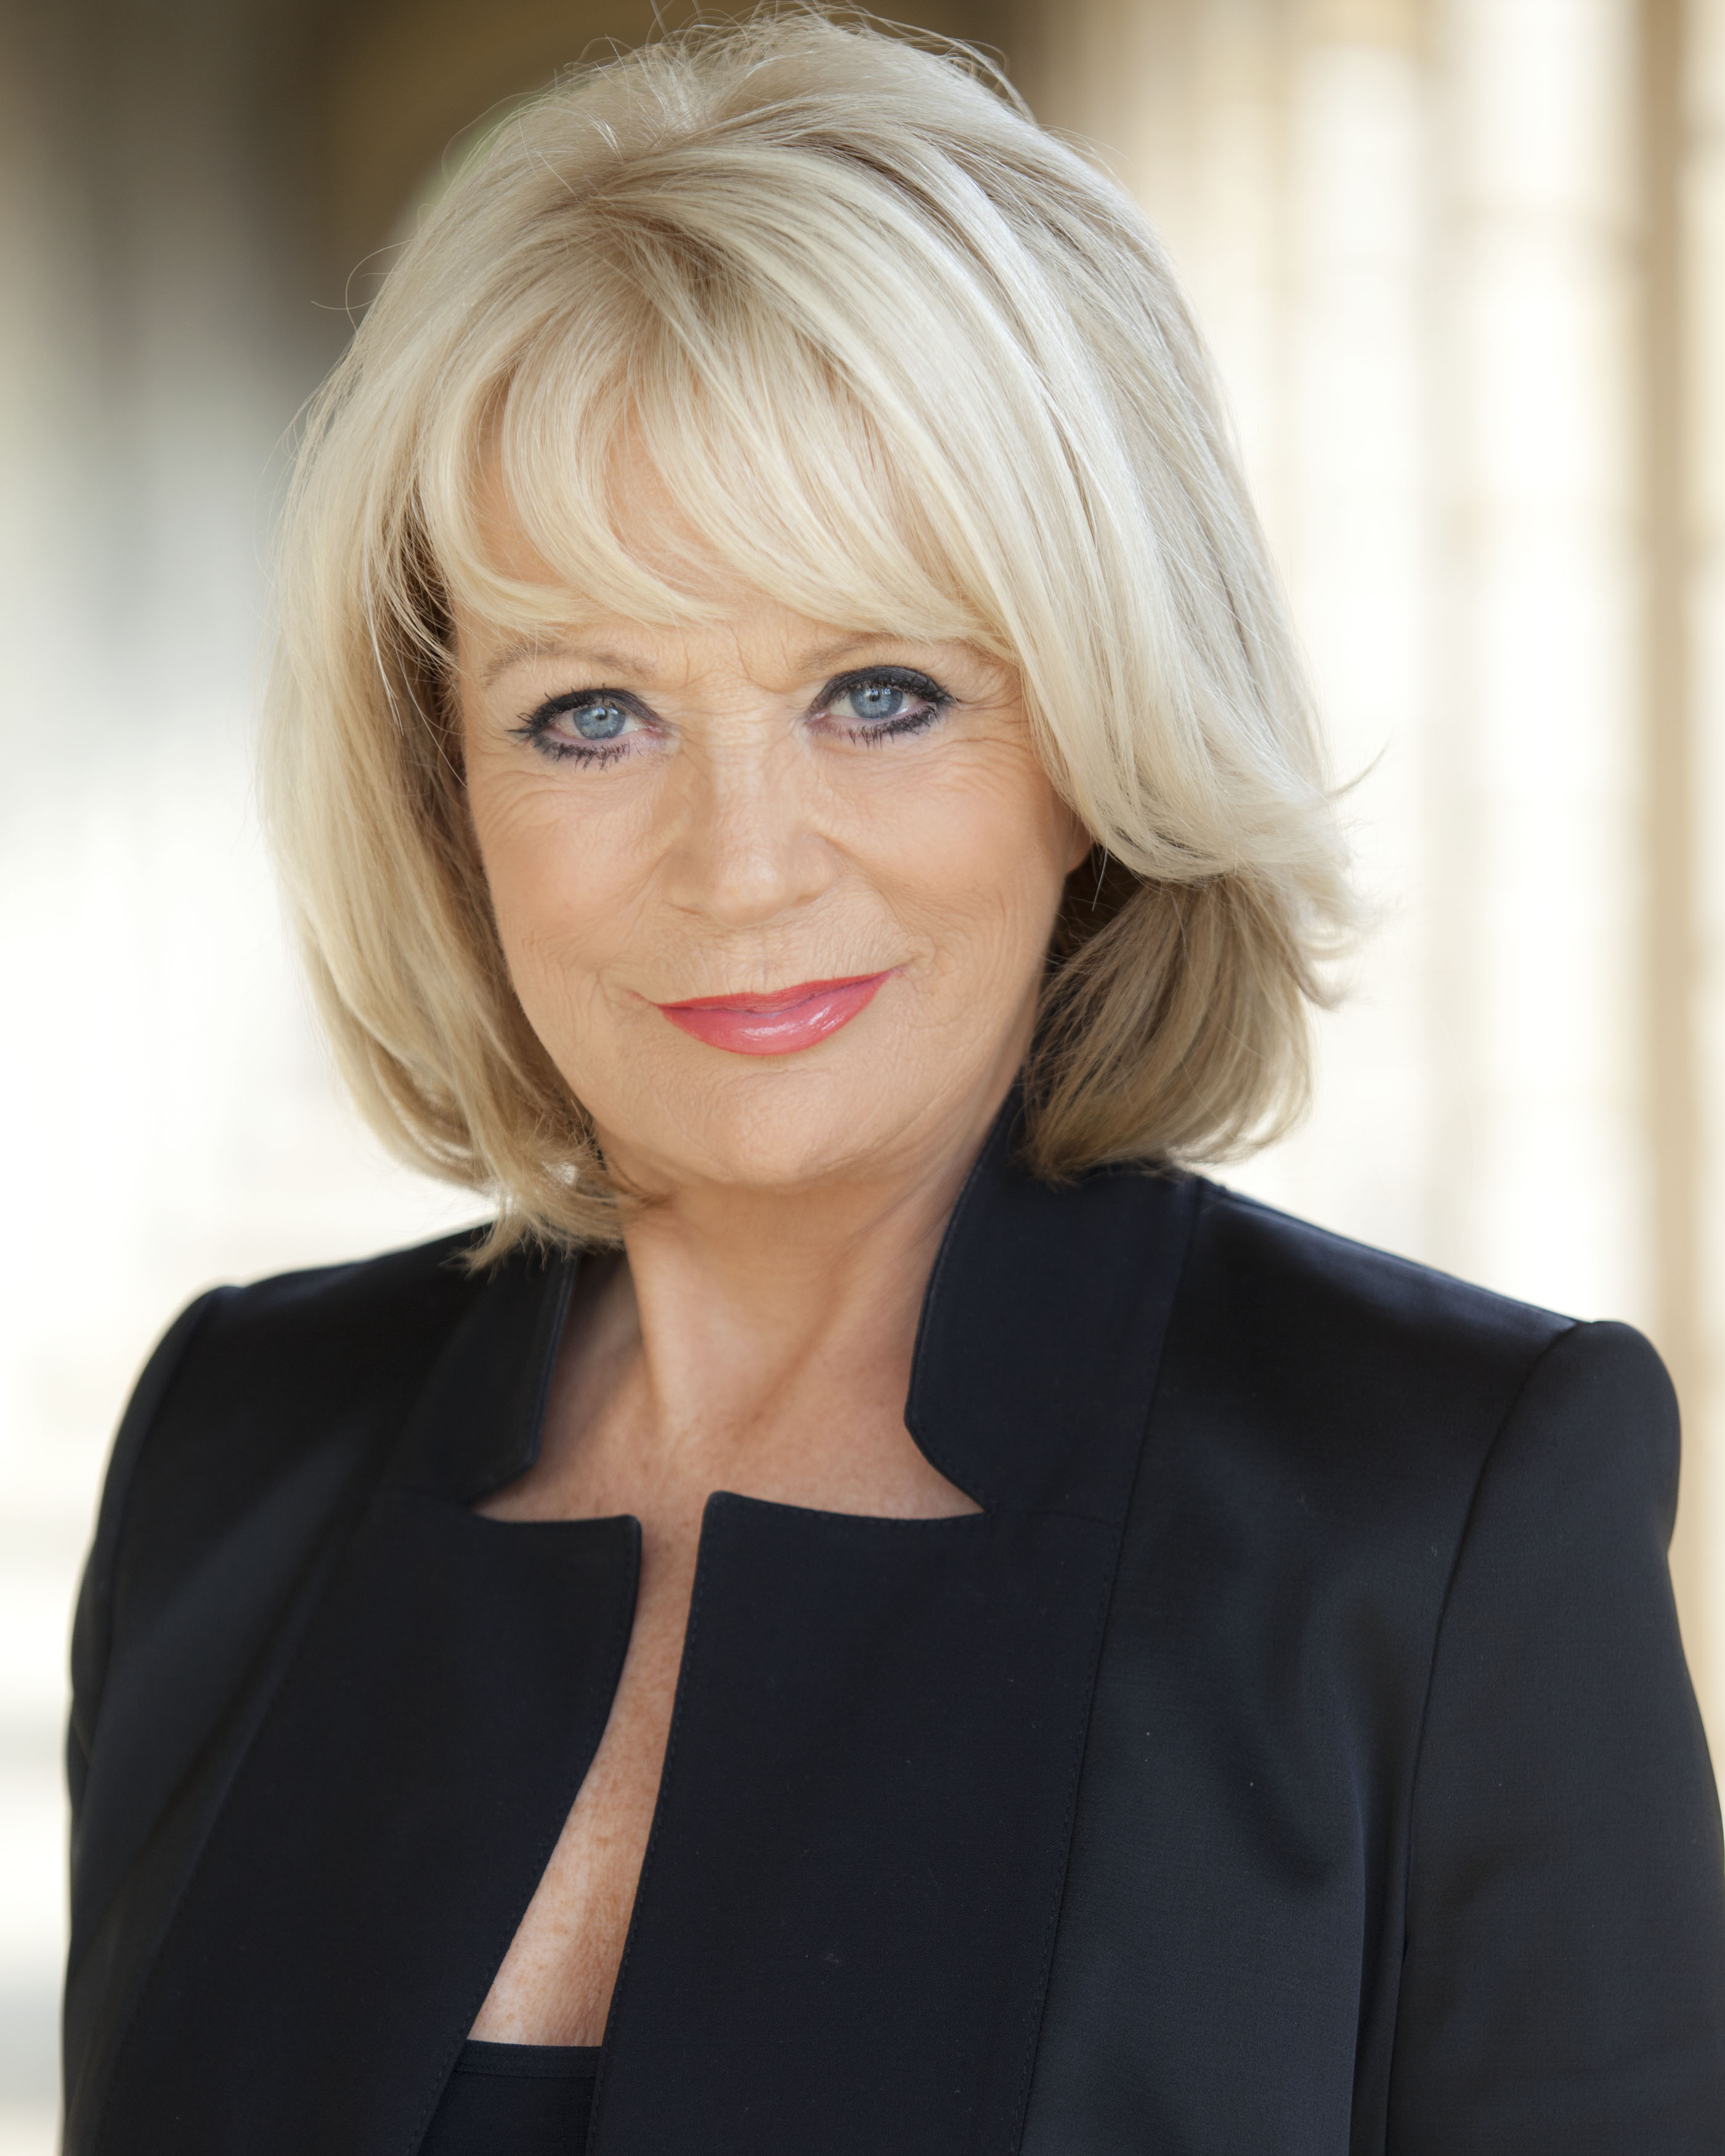 Sherrie Hewson nude photos 2019